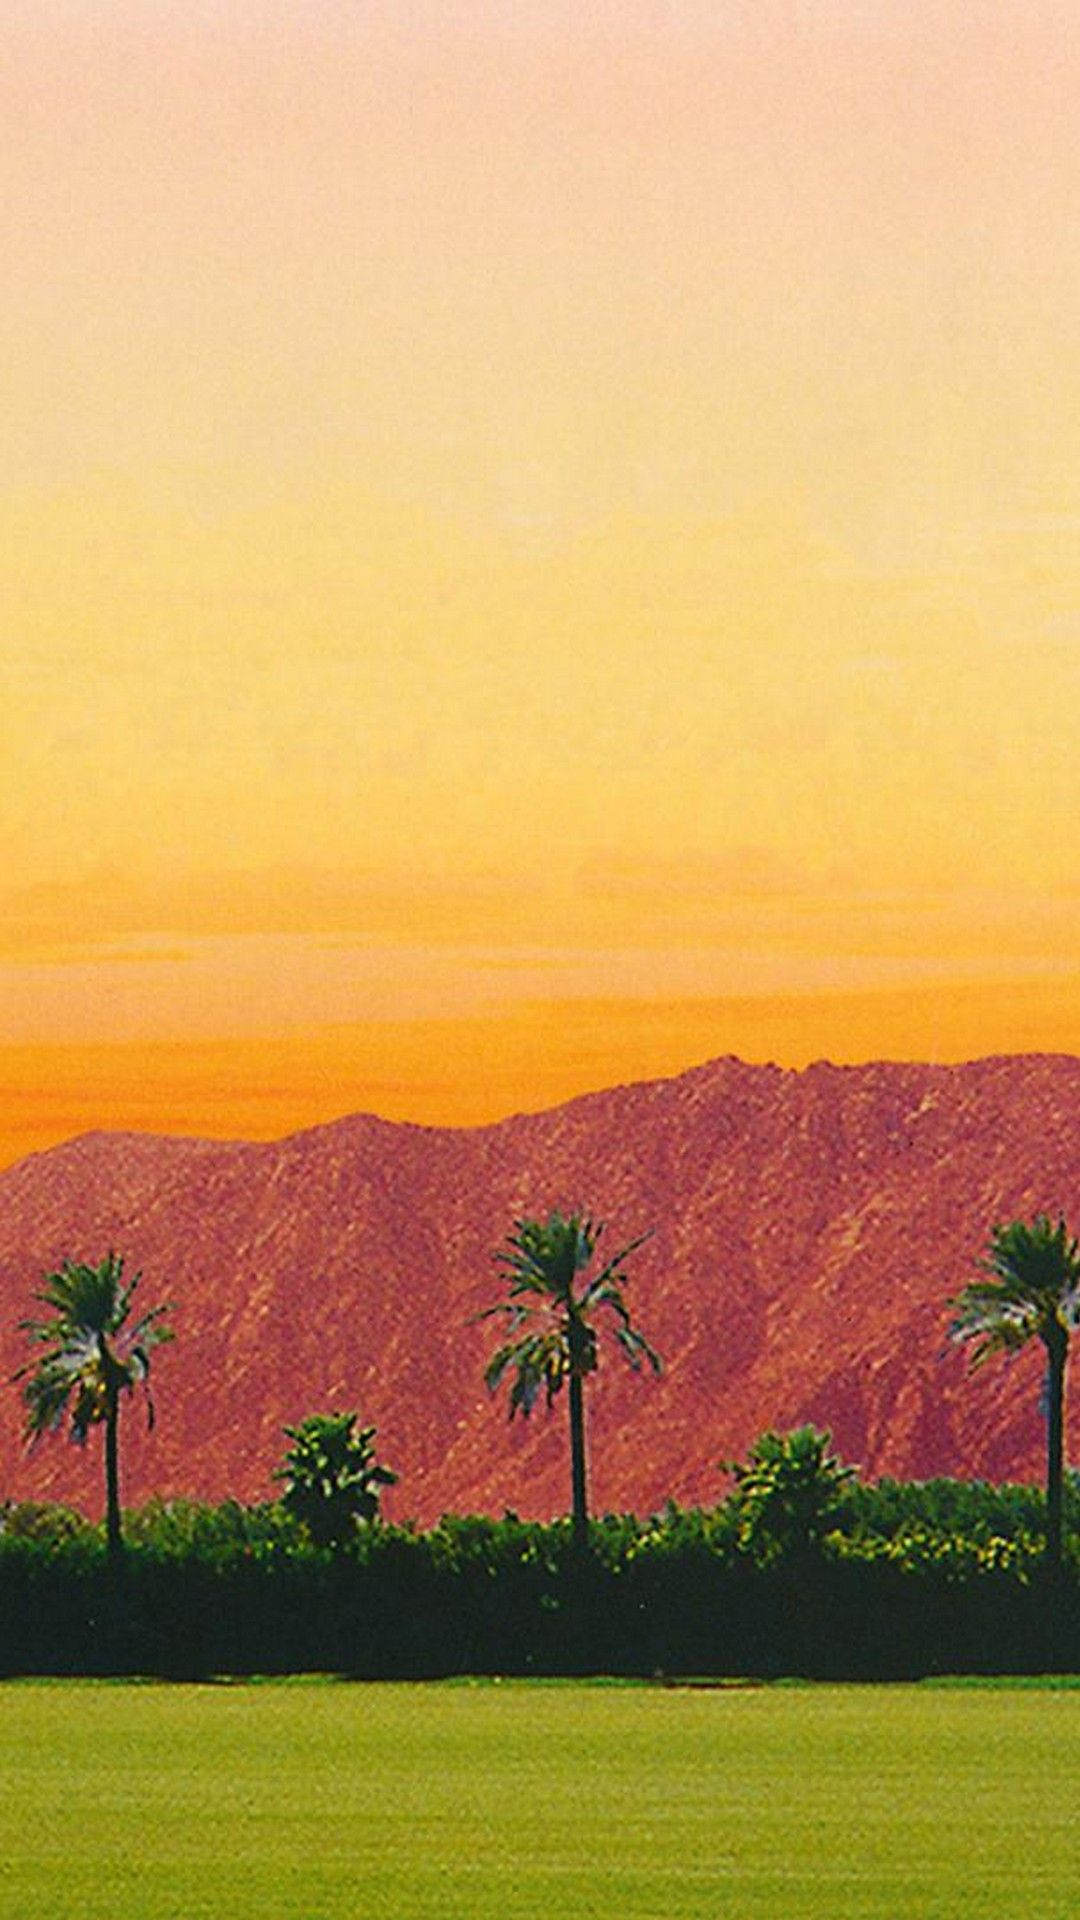 1080x1920 Coachella 2019 Wallpaper For Android - 2019 Android Wallpapers